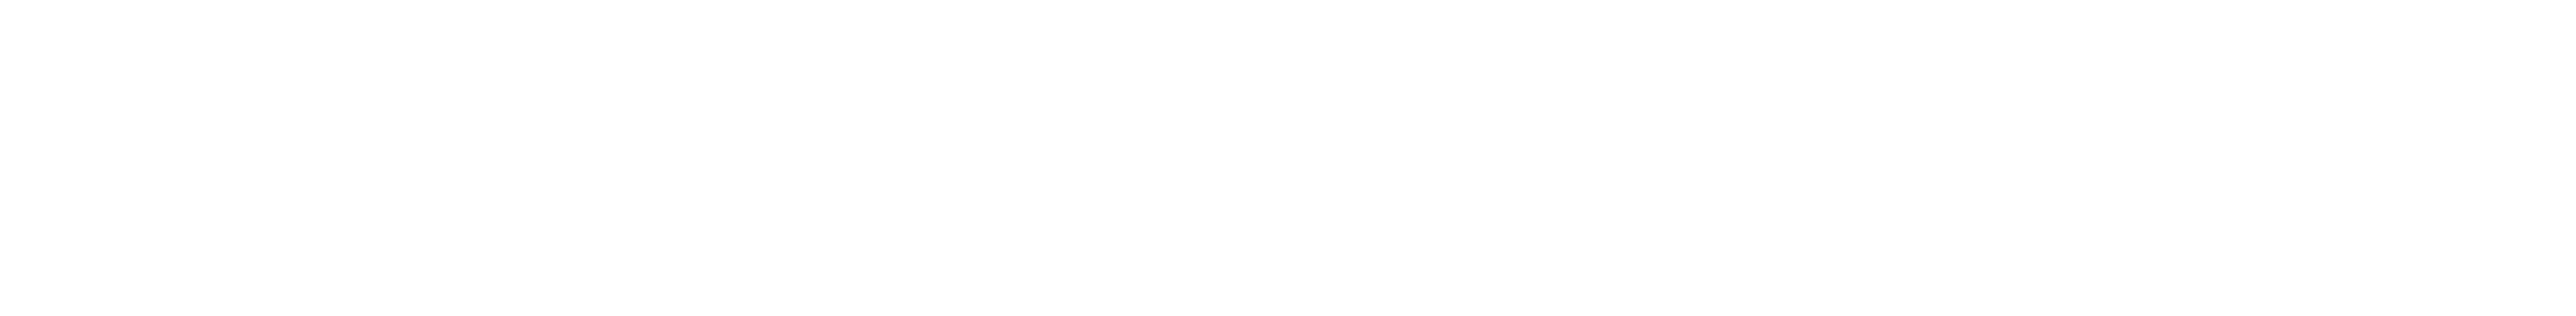 Gospel Folio Press Logo